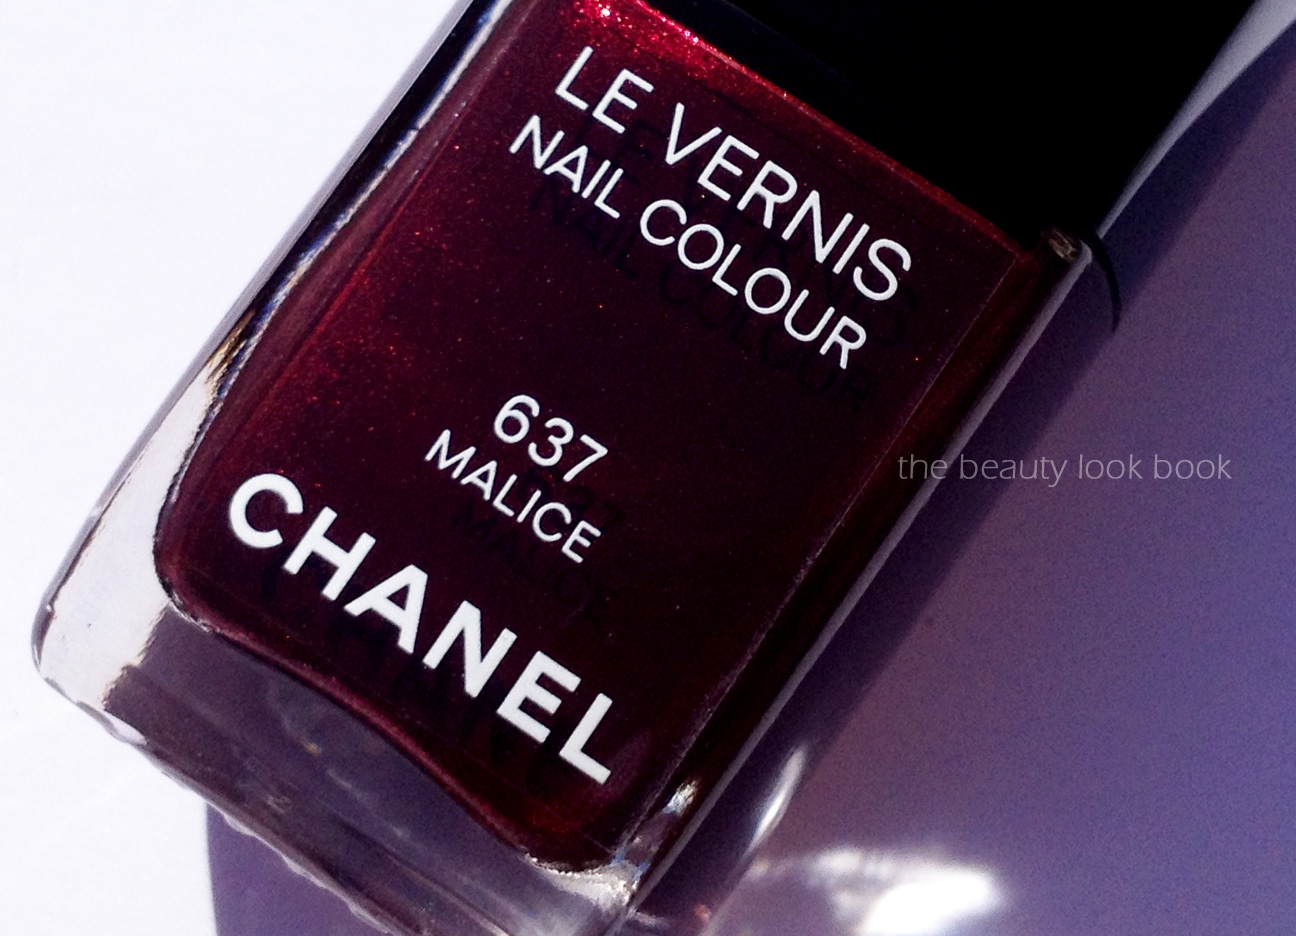 Chanel Malice 637 Le Vernis Holiday 2012 The Beauty Look Book